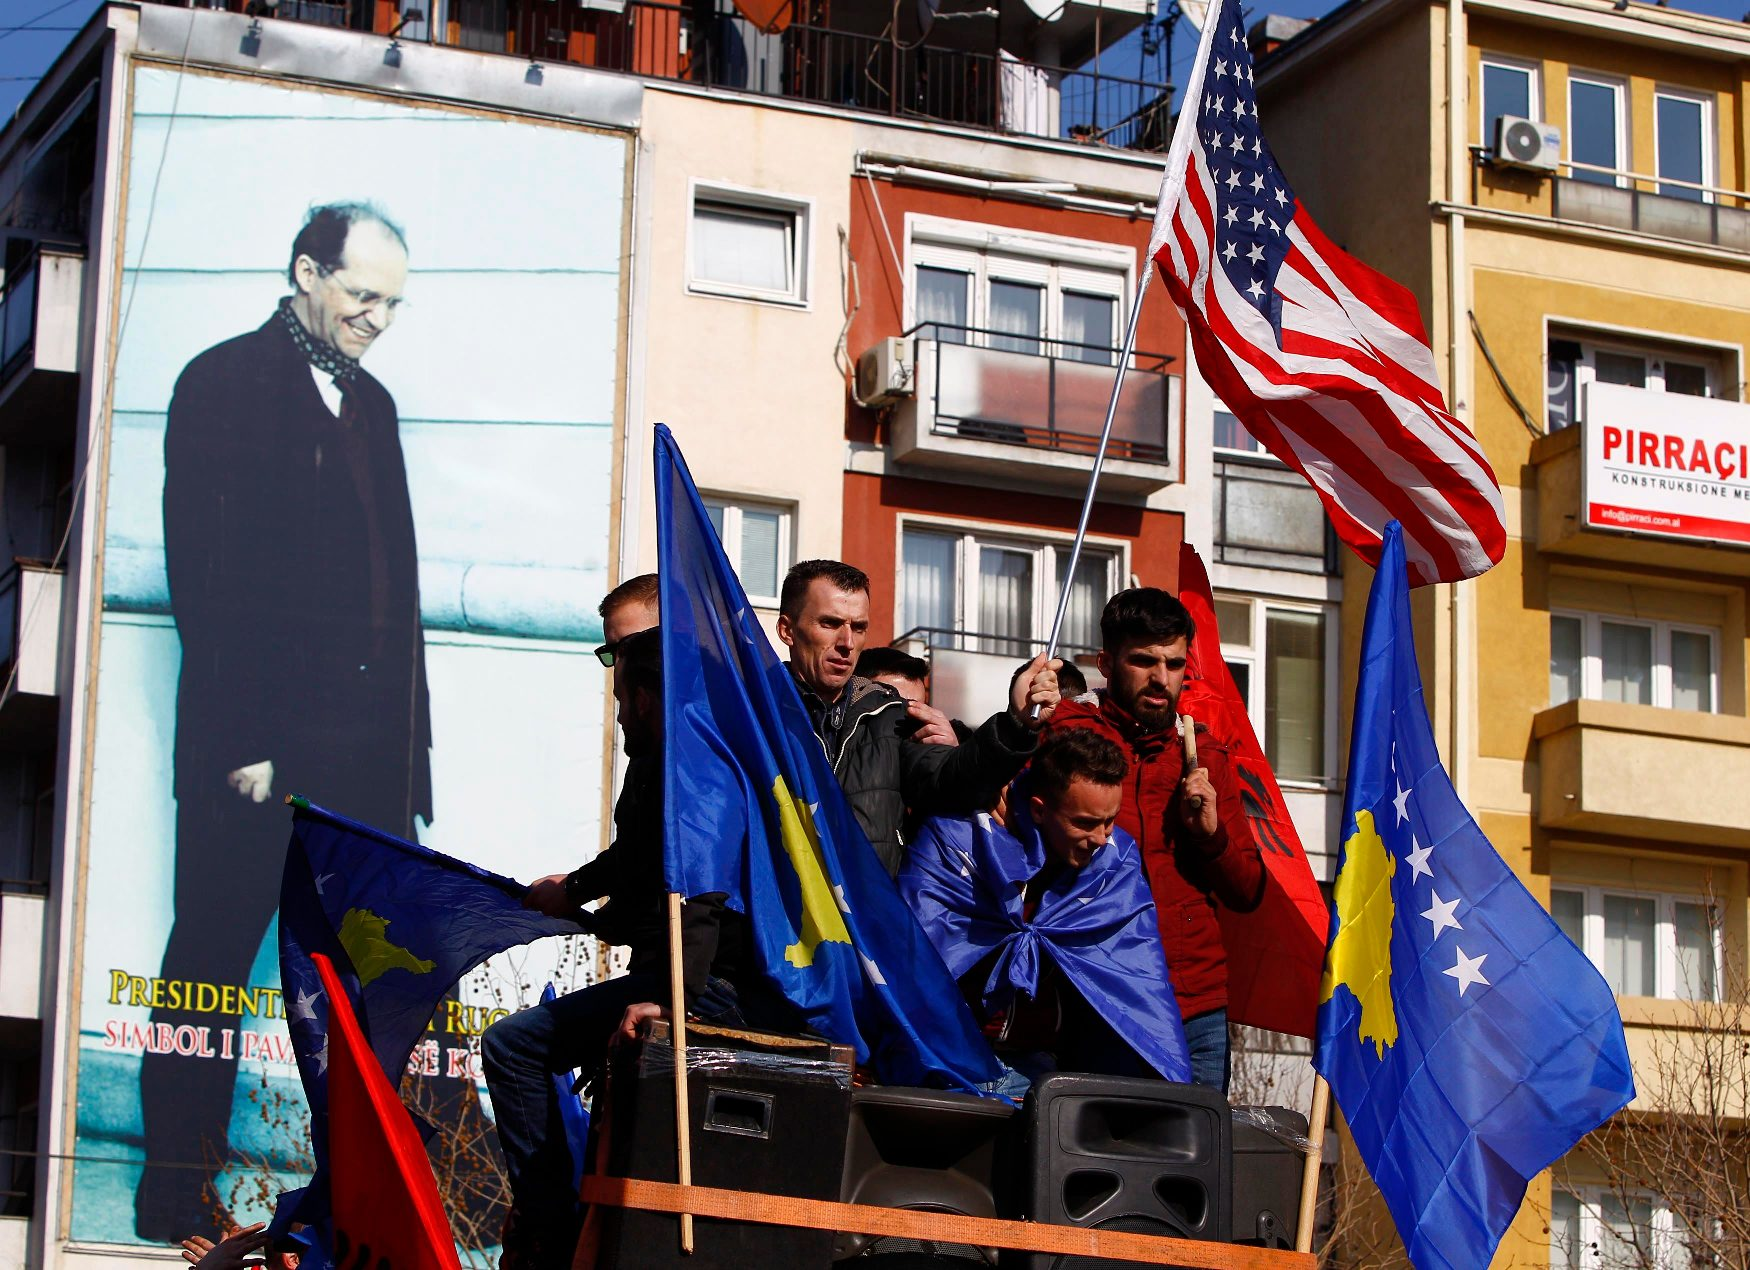 2018-02-17T135959Z_536964596_UP1EE2H12VY7T_RTRMADP_3_KOSOVO-INDEPENDENCE-ANNIVERSARY